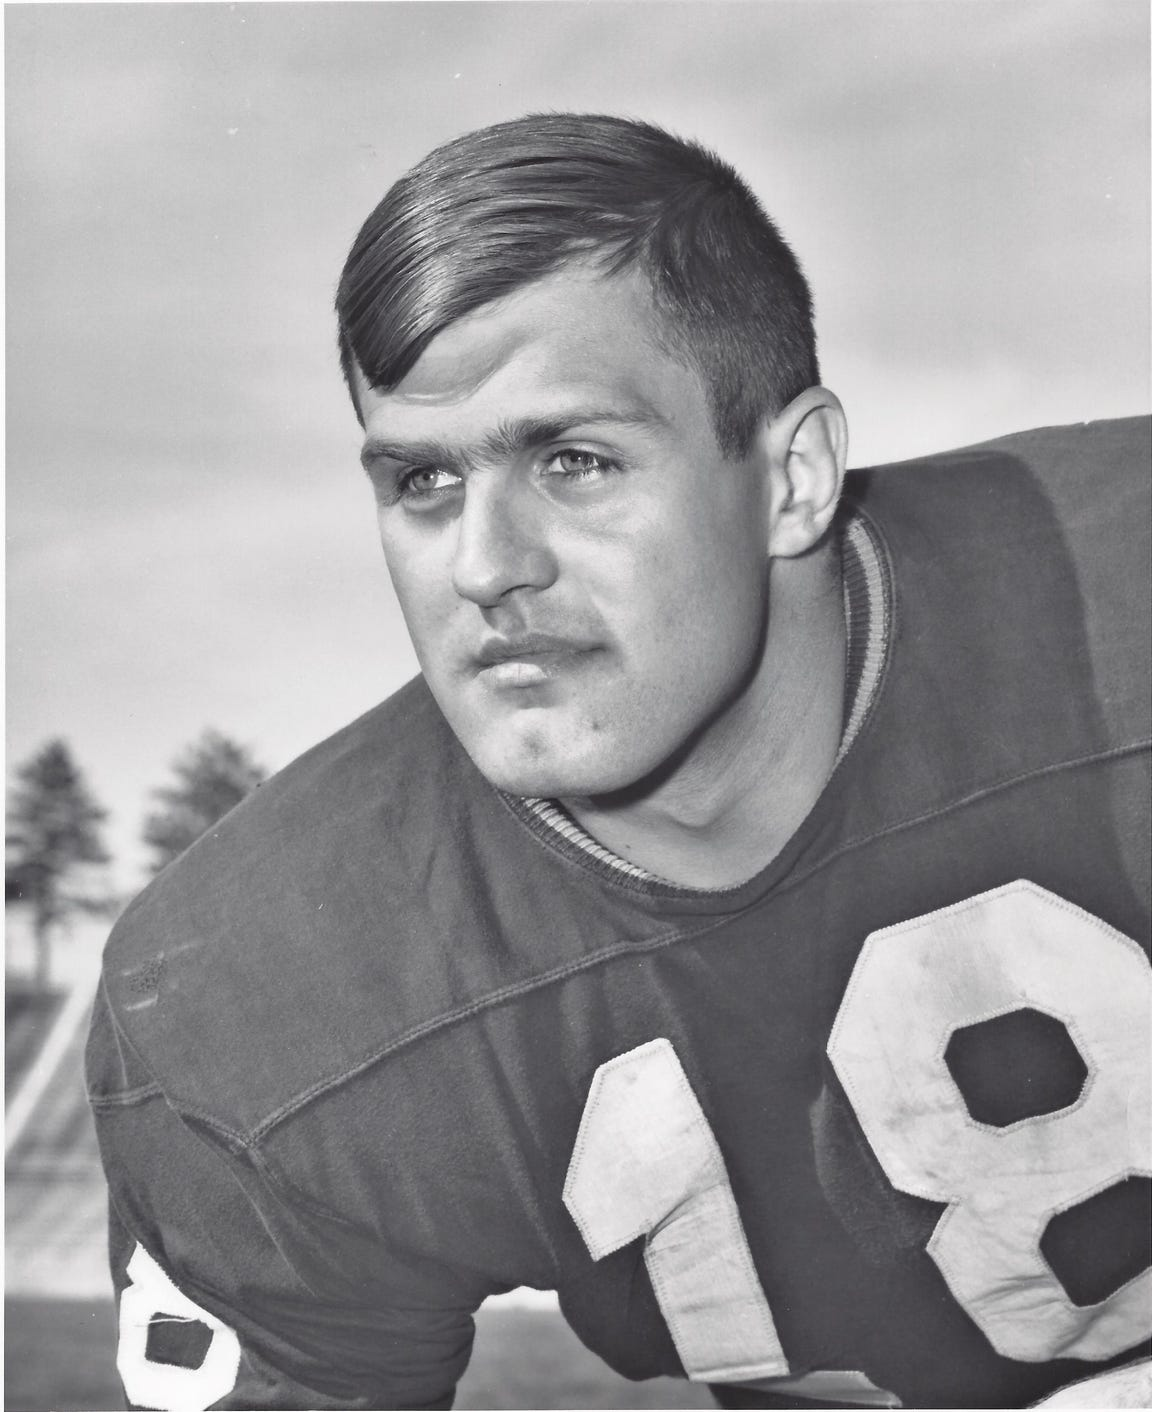 Bob Hadrick was a three-time first team All-Big Ten selection for Purdue in the mid-1960s